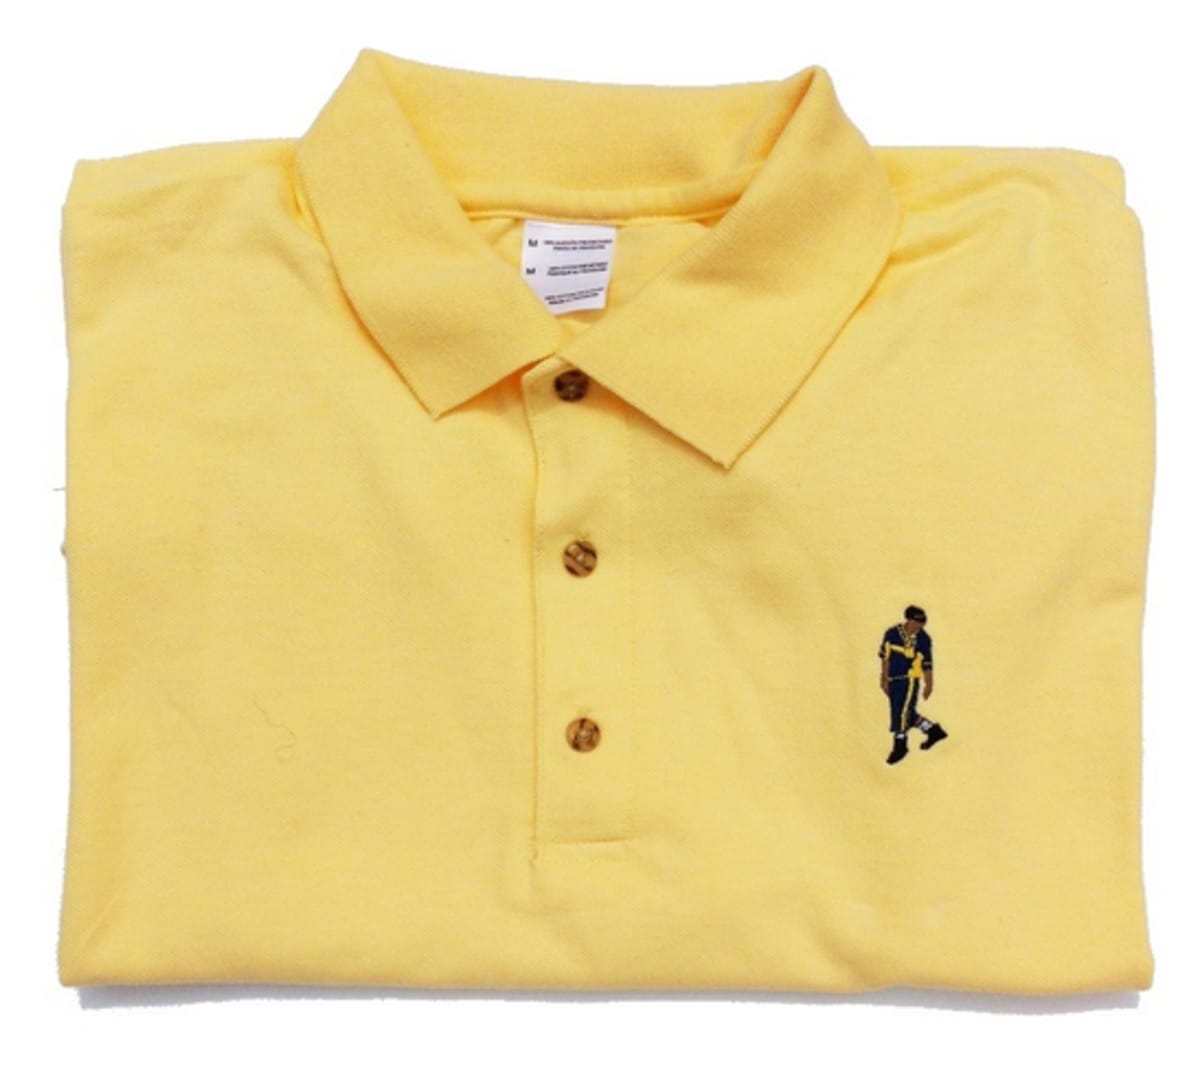 The Yolo Polo Designer Explains Why Drake Never Got His Order And